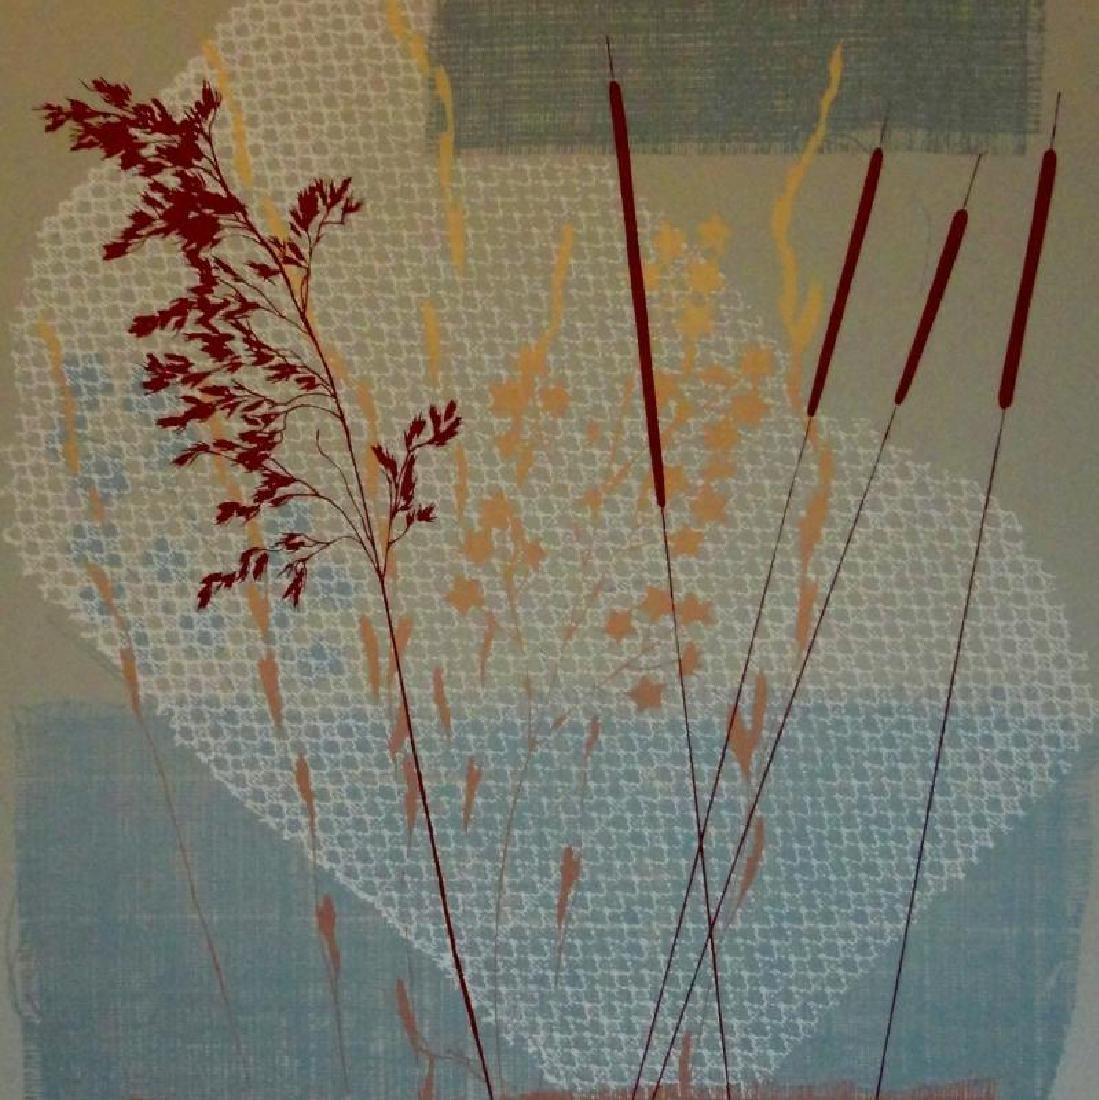 Rustic Abstract Litho on Paper Signed Art - 3